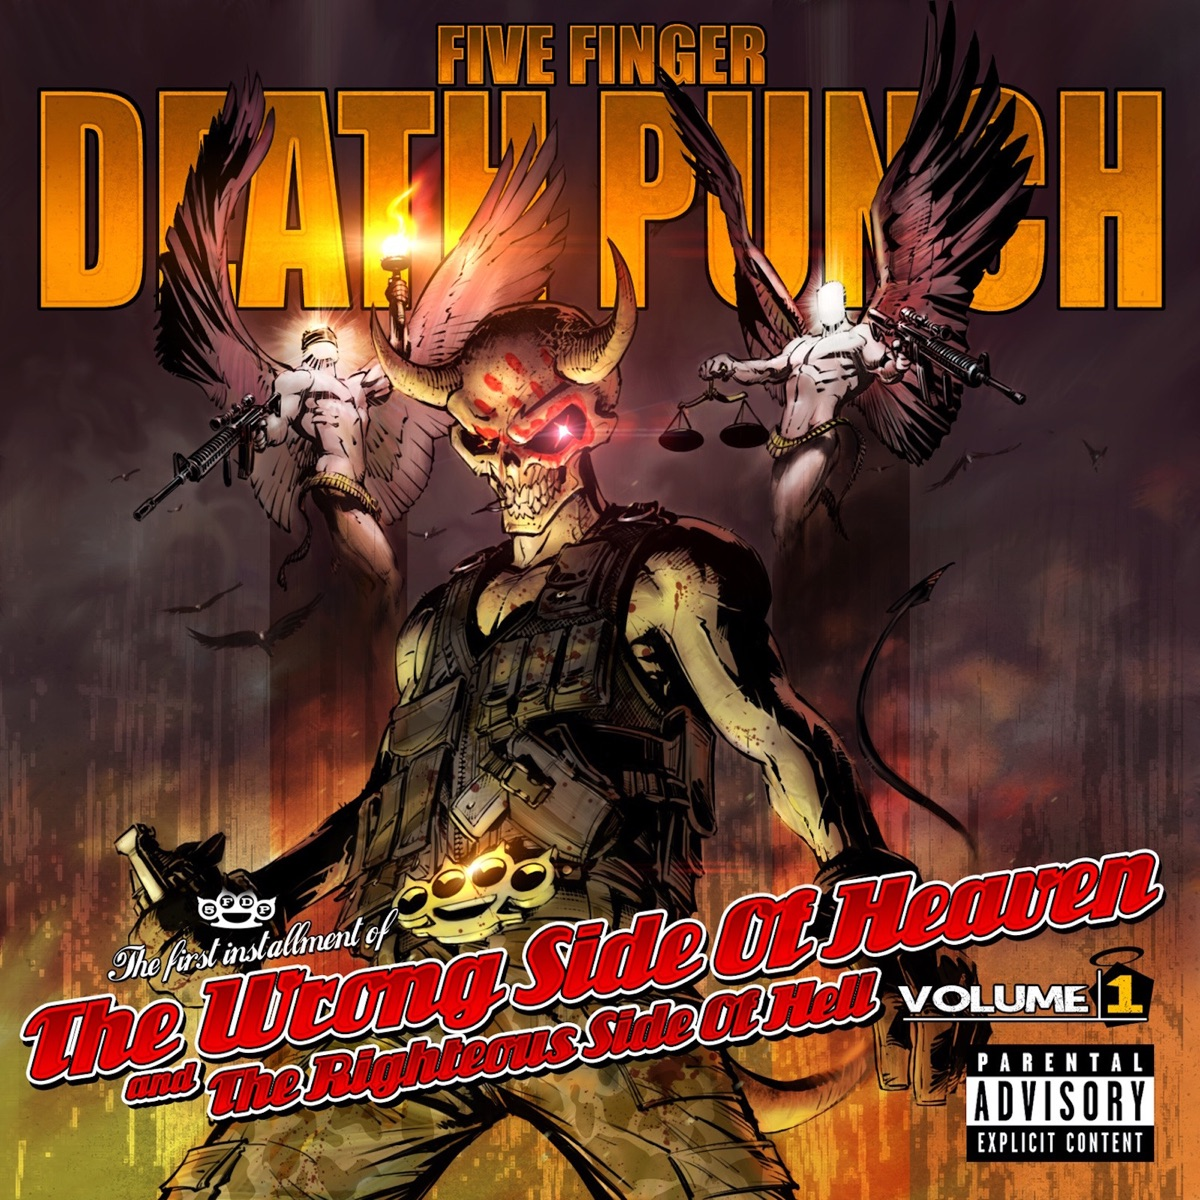 The Wrong Side of Heaven and the Righteous Side of Hell Vol 1 Deluxe Edition Five Finger Death Punch CD cover